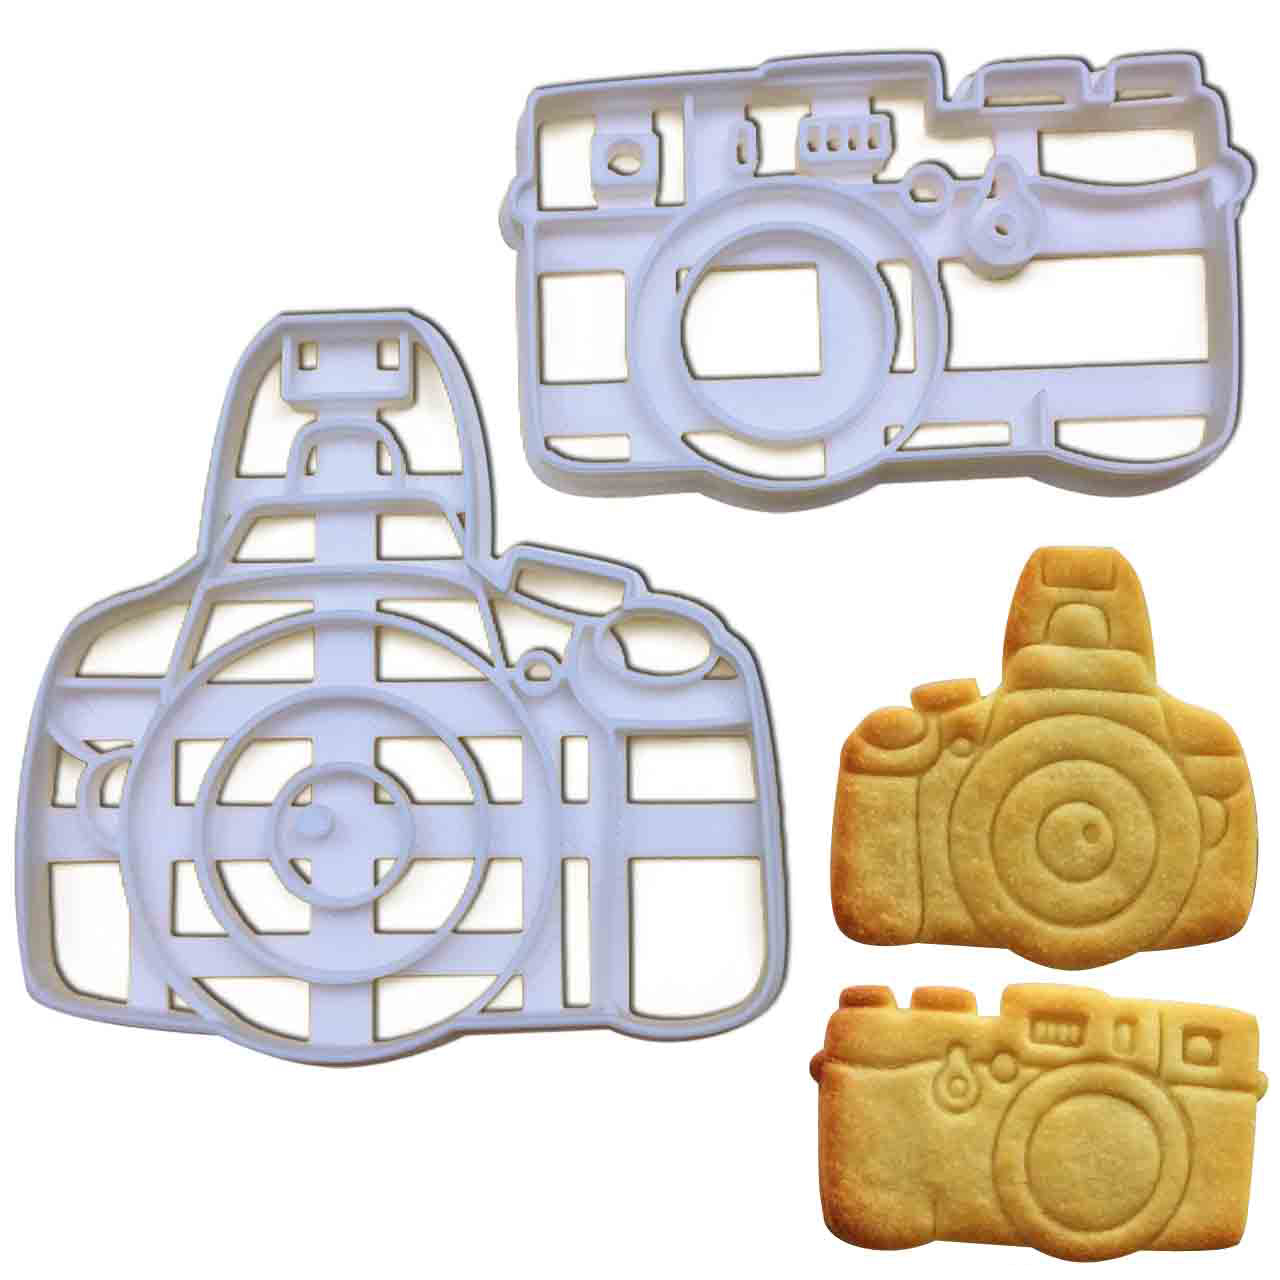 set of 2 camera cookie cutters, featuring a dslr and a slr camera